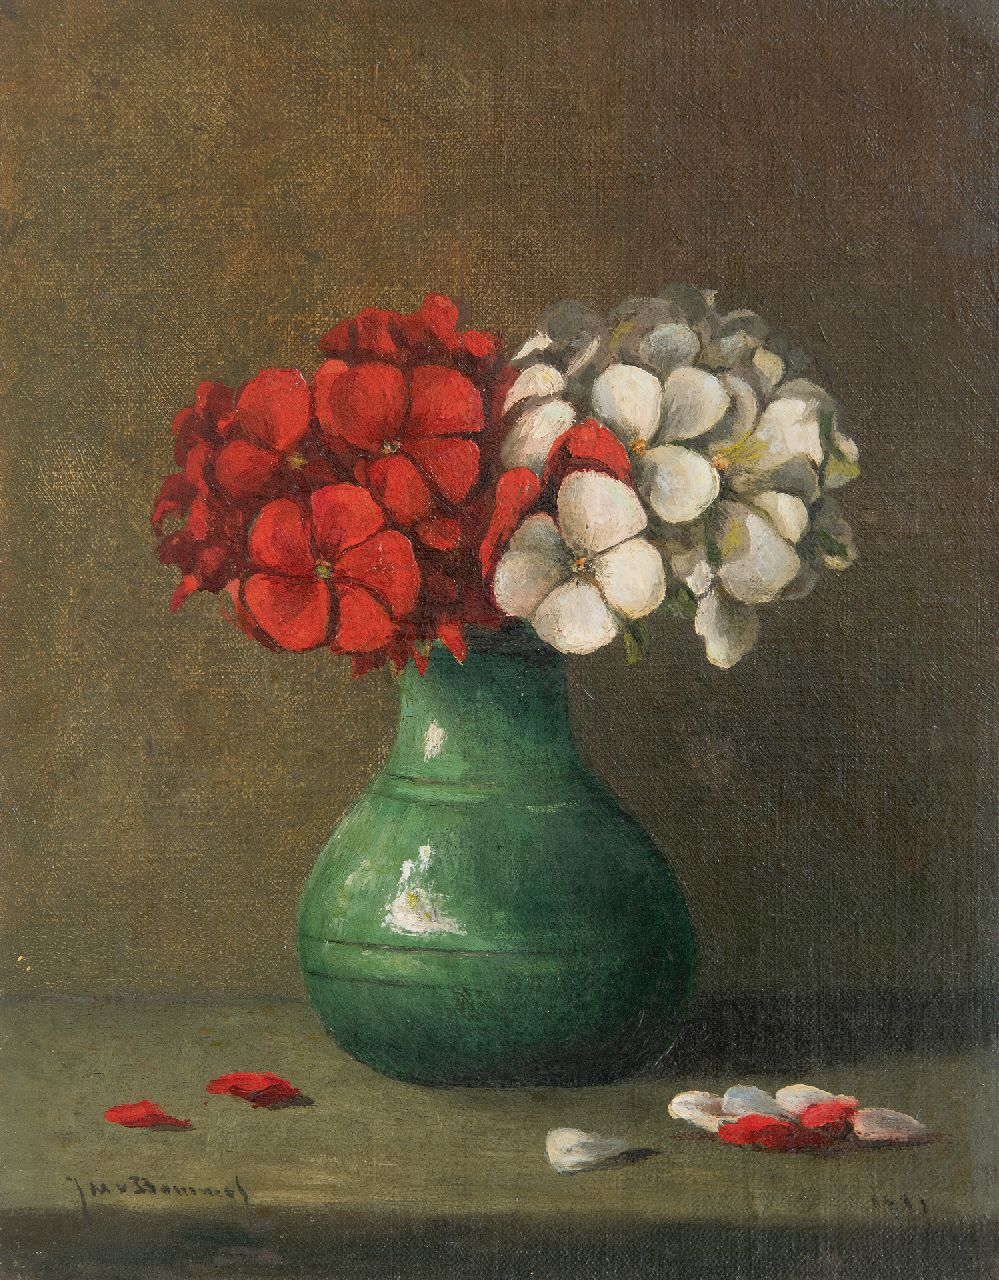 Jacobus Marinus van Bommel | Red and white geranium flowers in a vase, oil on canvas laid down on panel, 23.0 x 18.1 cm, signed l.l. and dated 1917